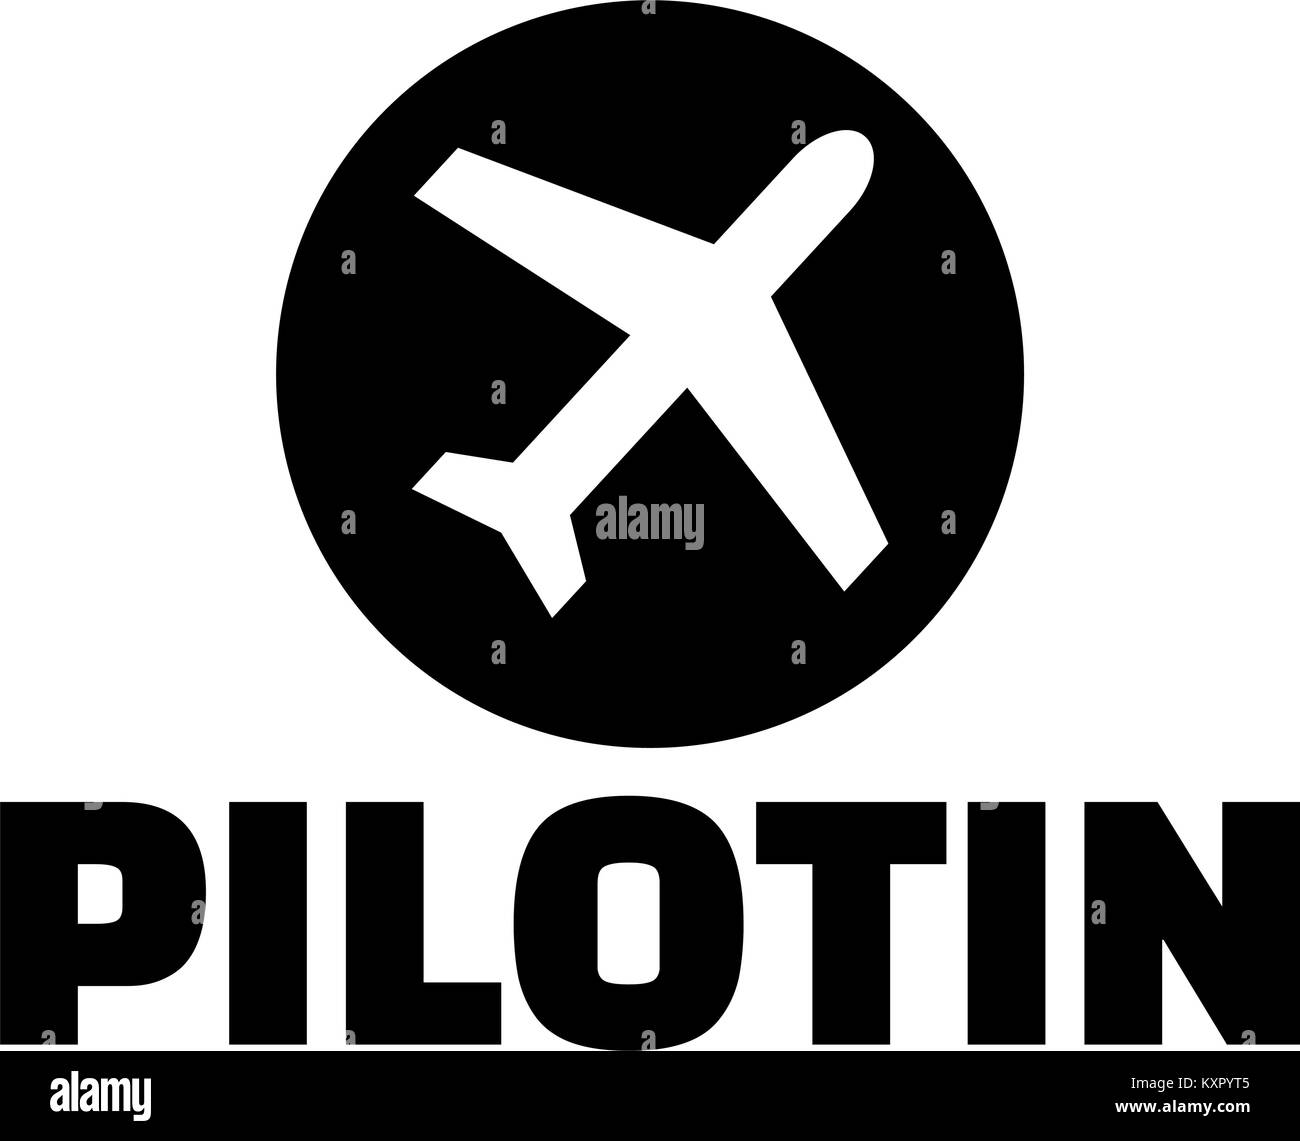 female pilot german word with plane icon stock vector art